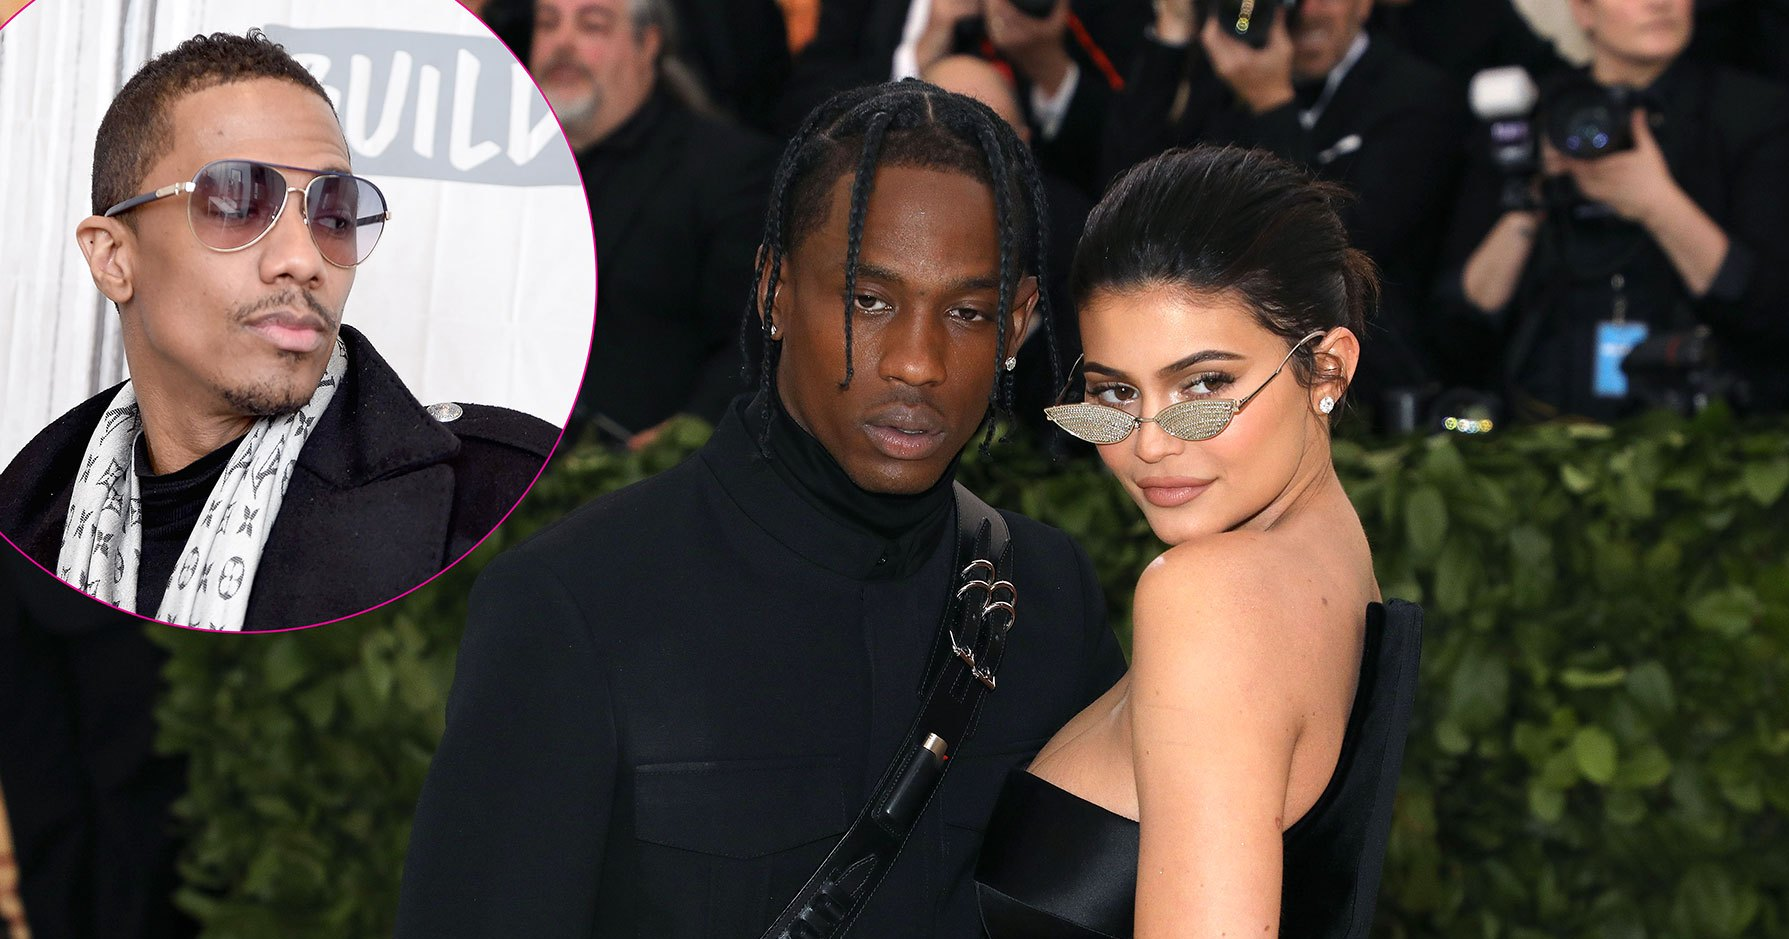 Nick Cannon Slams Travis Scott's Relationship With Kylie Jenner